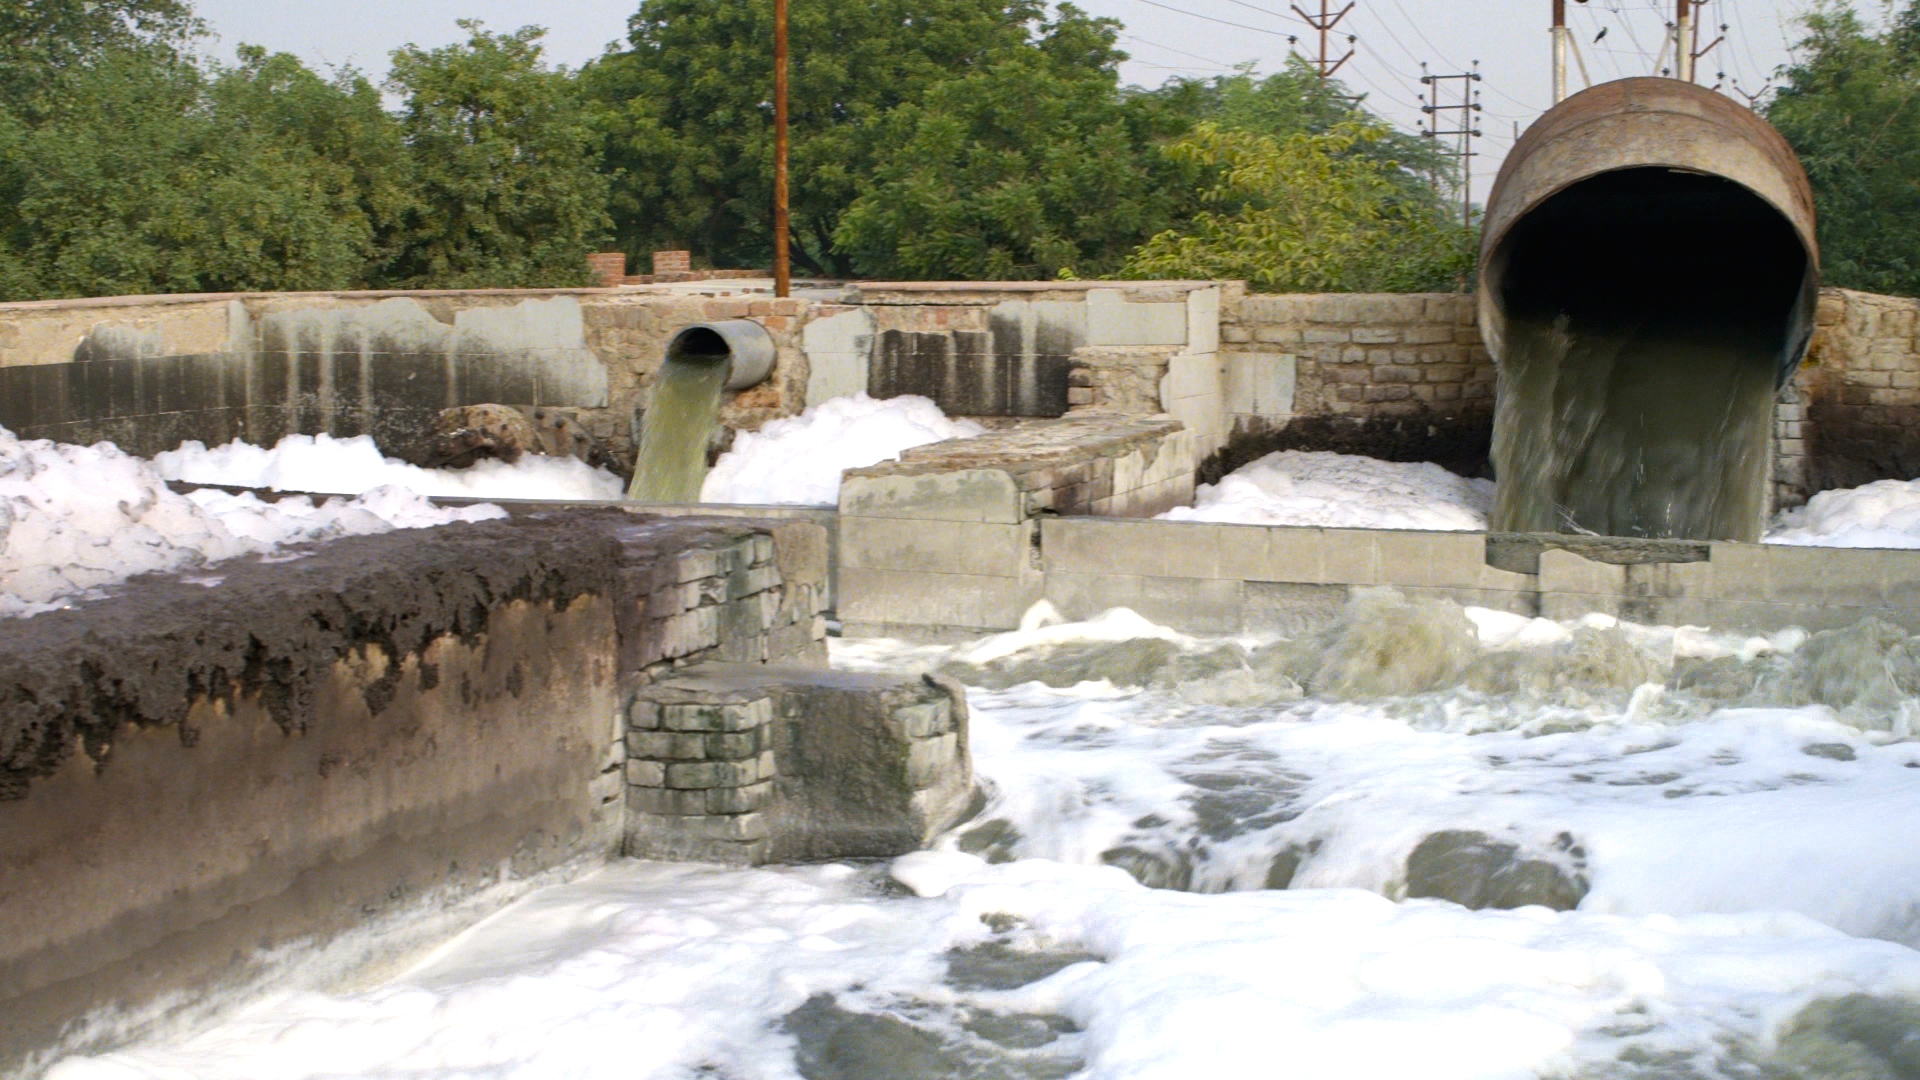 Chemical waste dumping into a flowing river next to a textile factory. Source: The True Cost